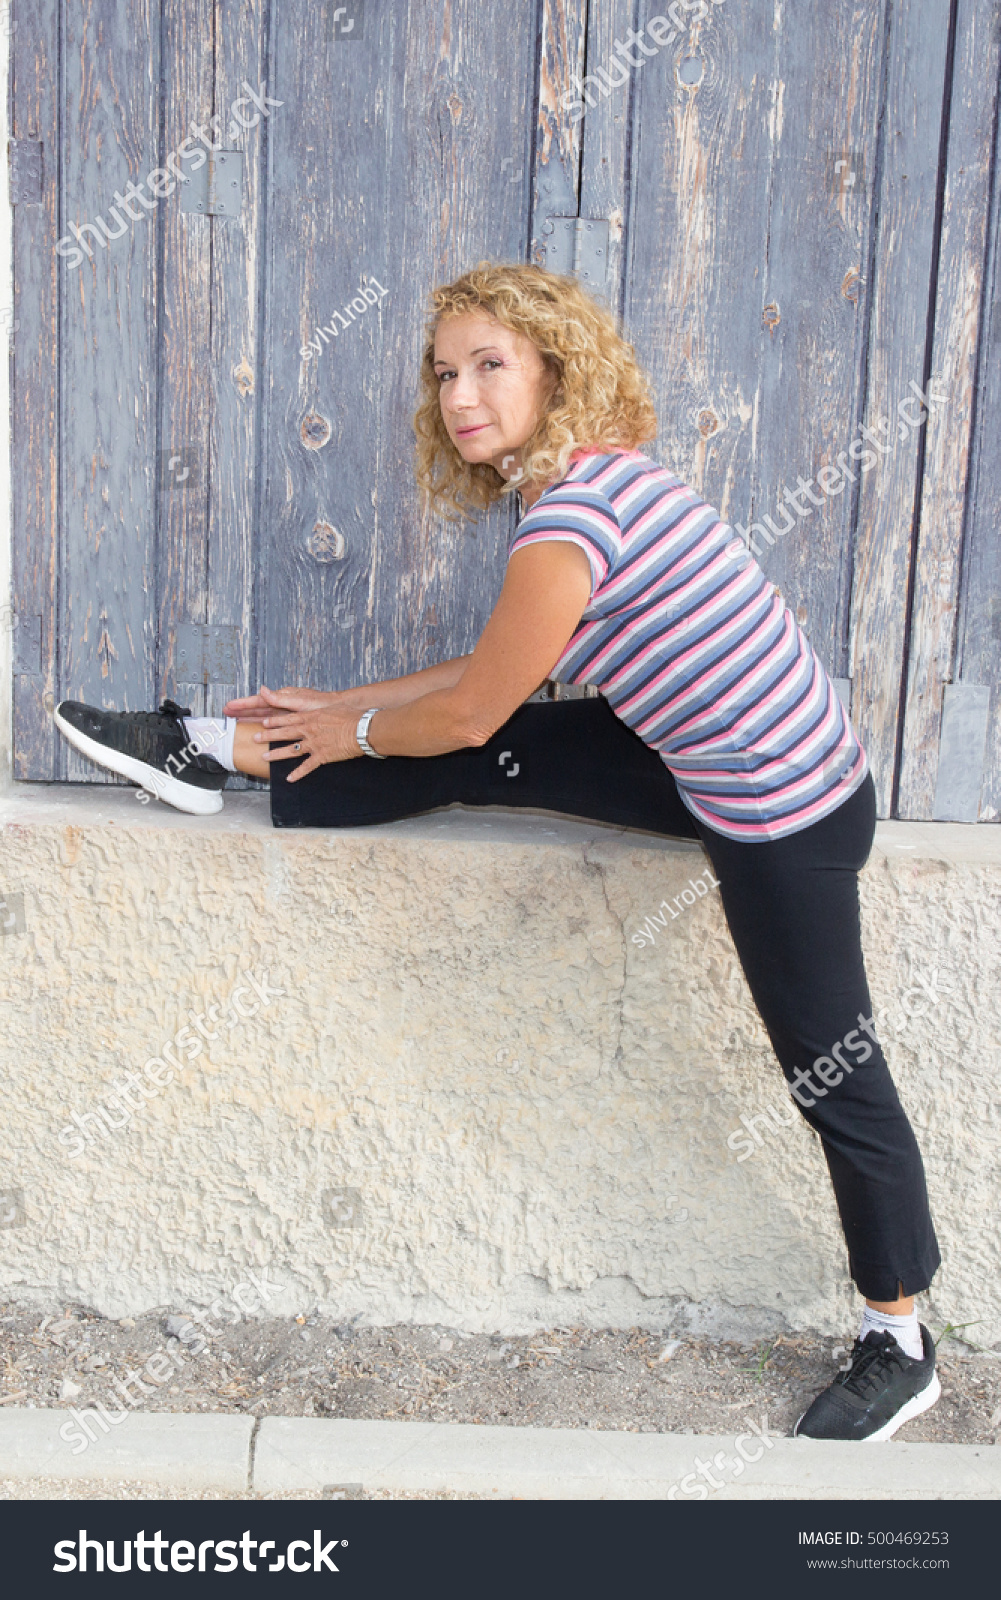 sports mature blonde girl outdoor stock photo & image (royalty-free